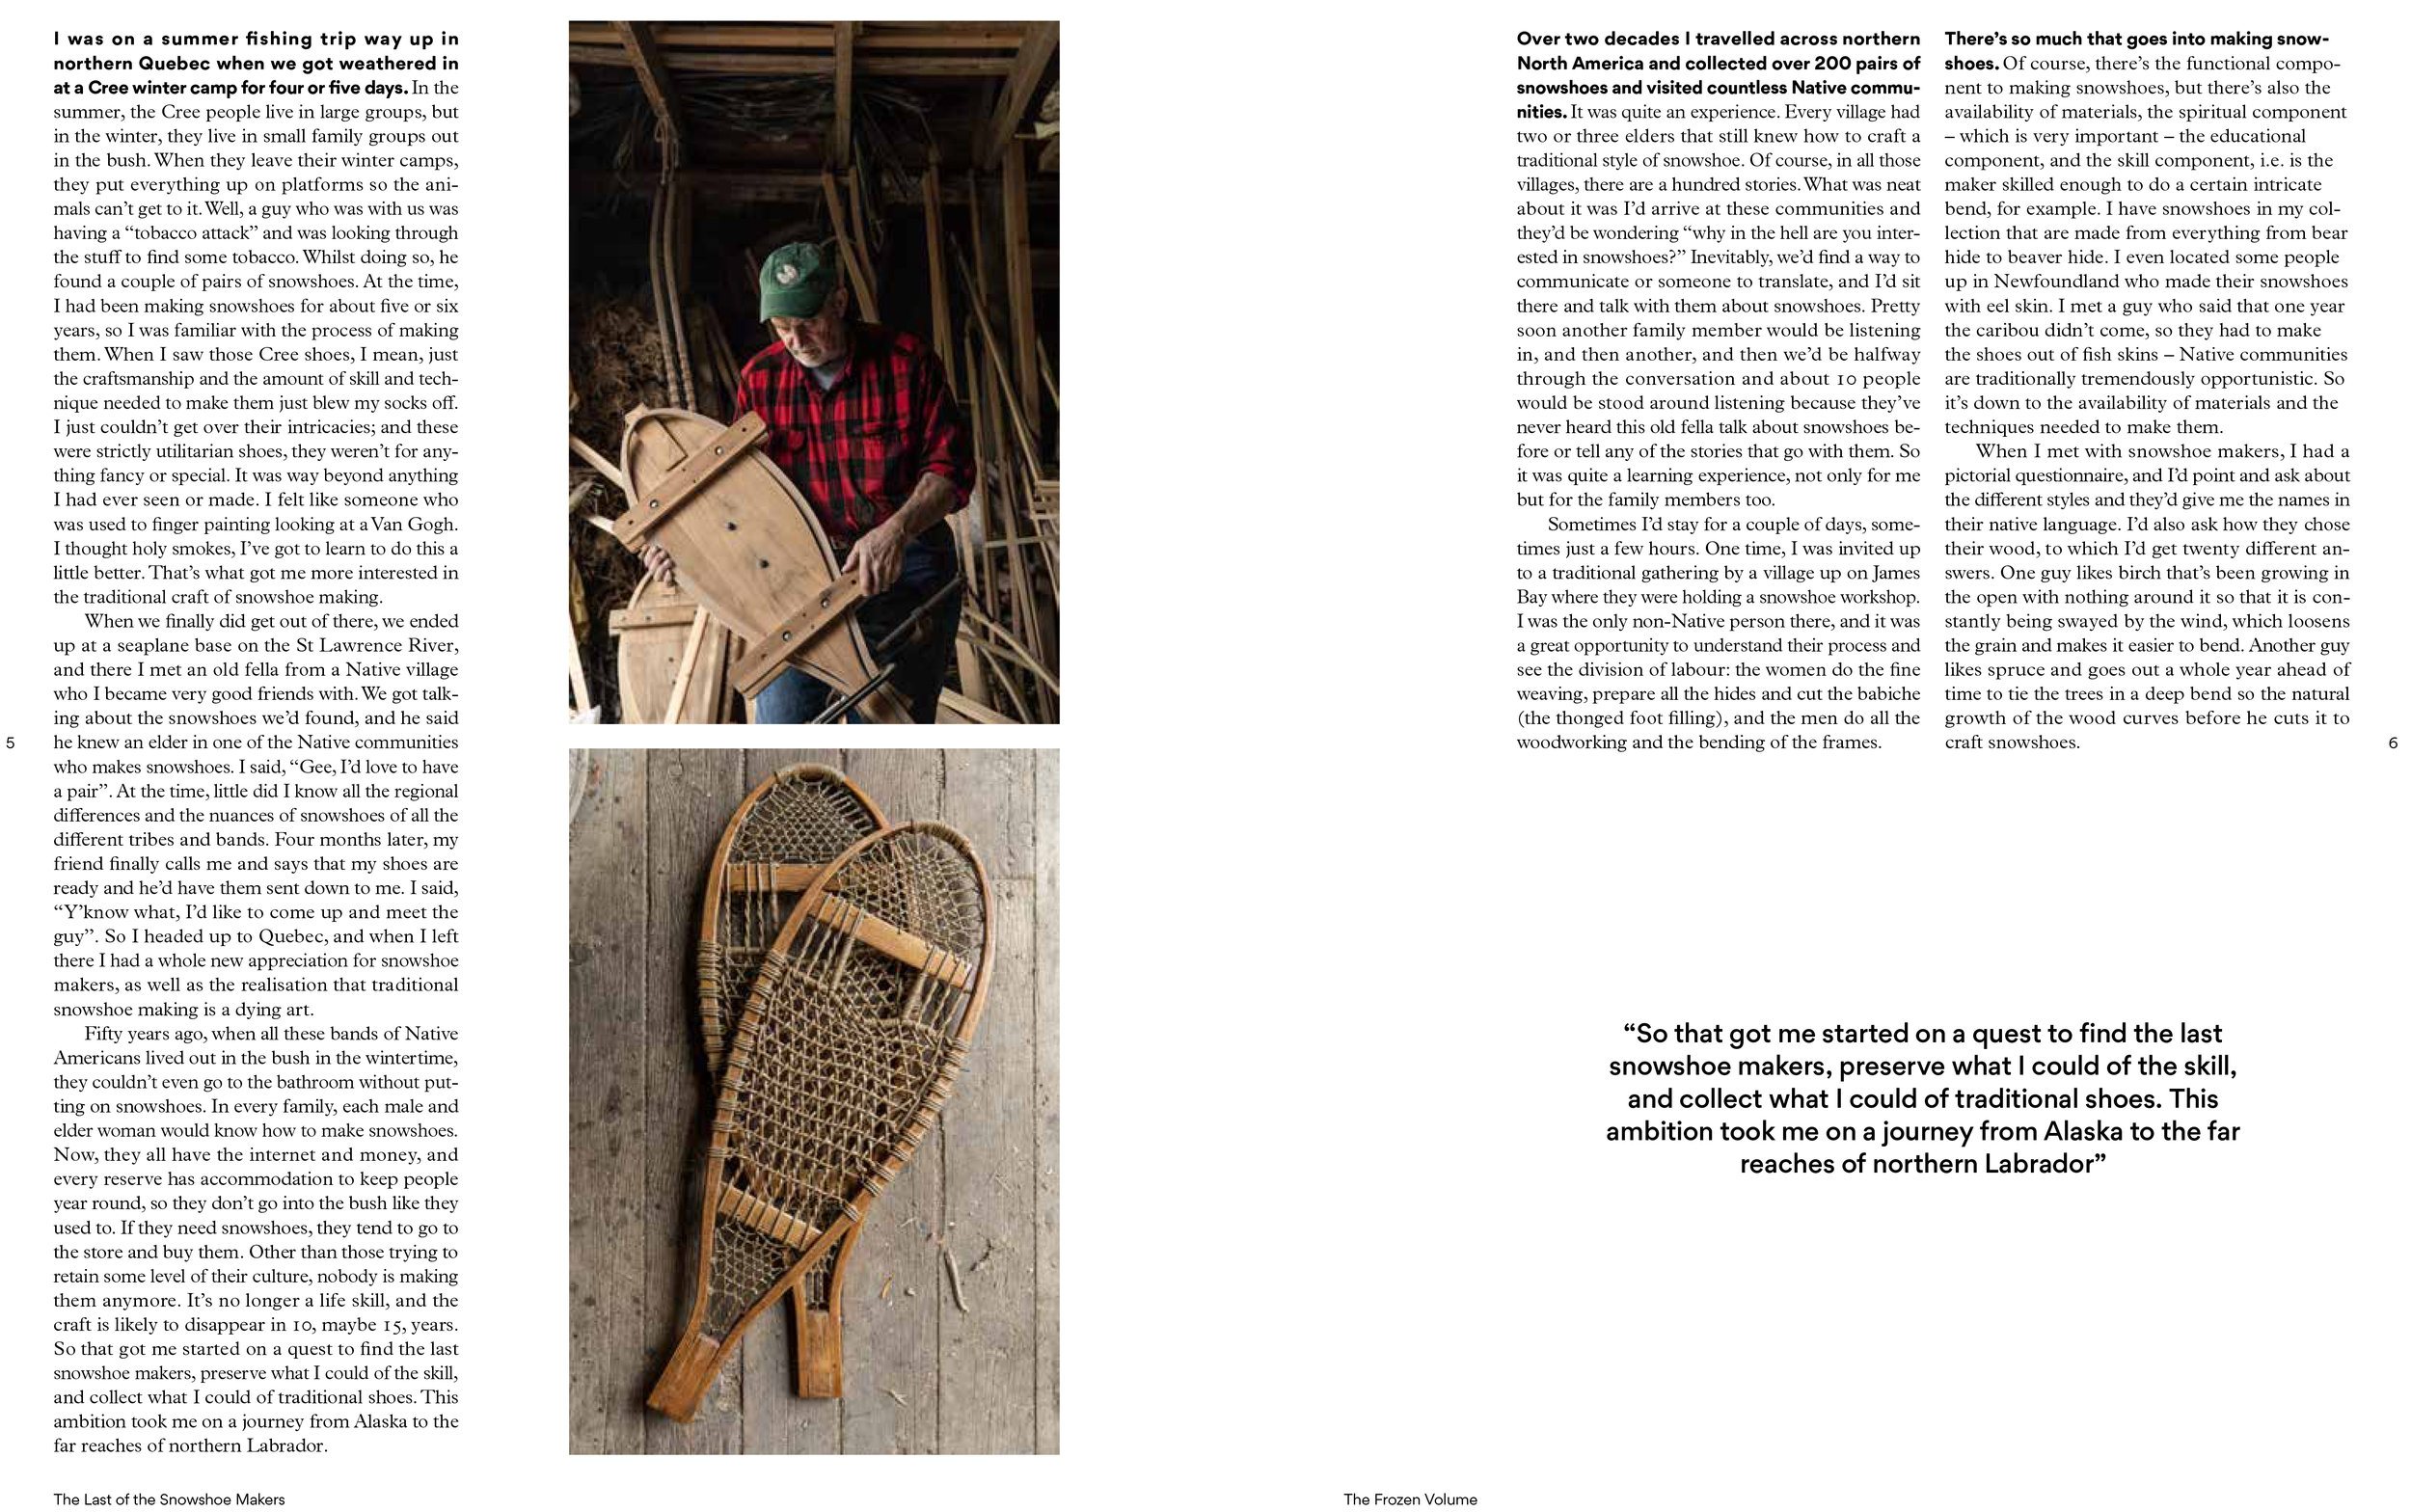 The Last of the Snowshoe Makers-3.jpg